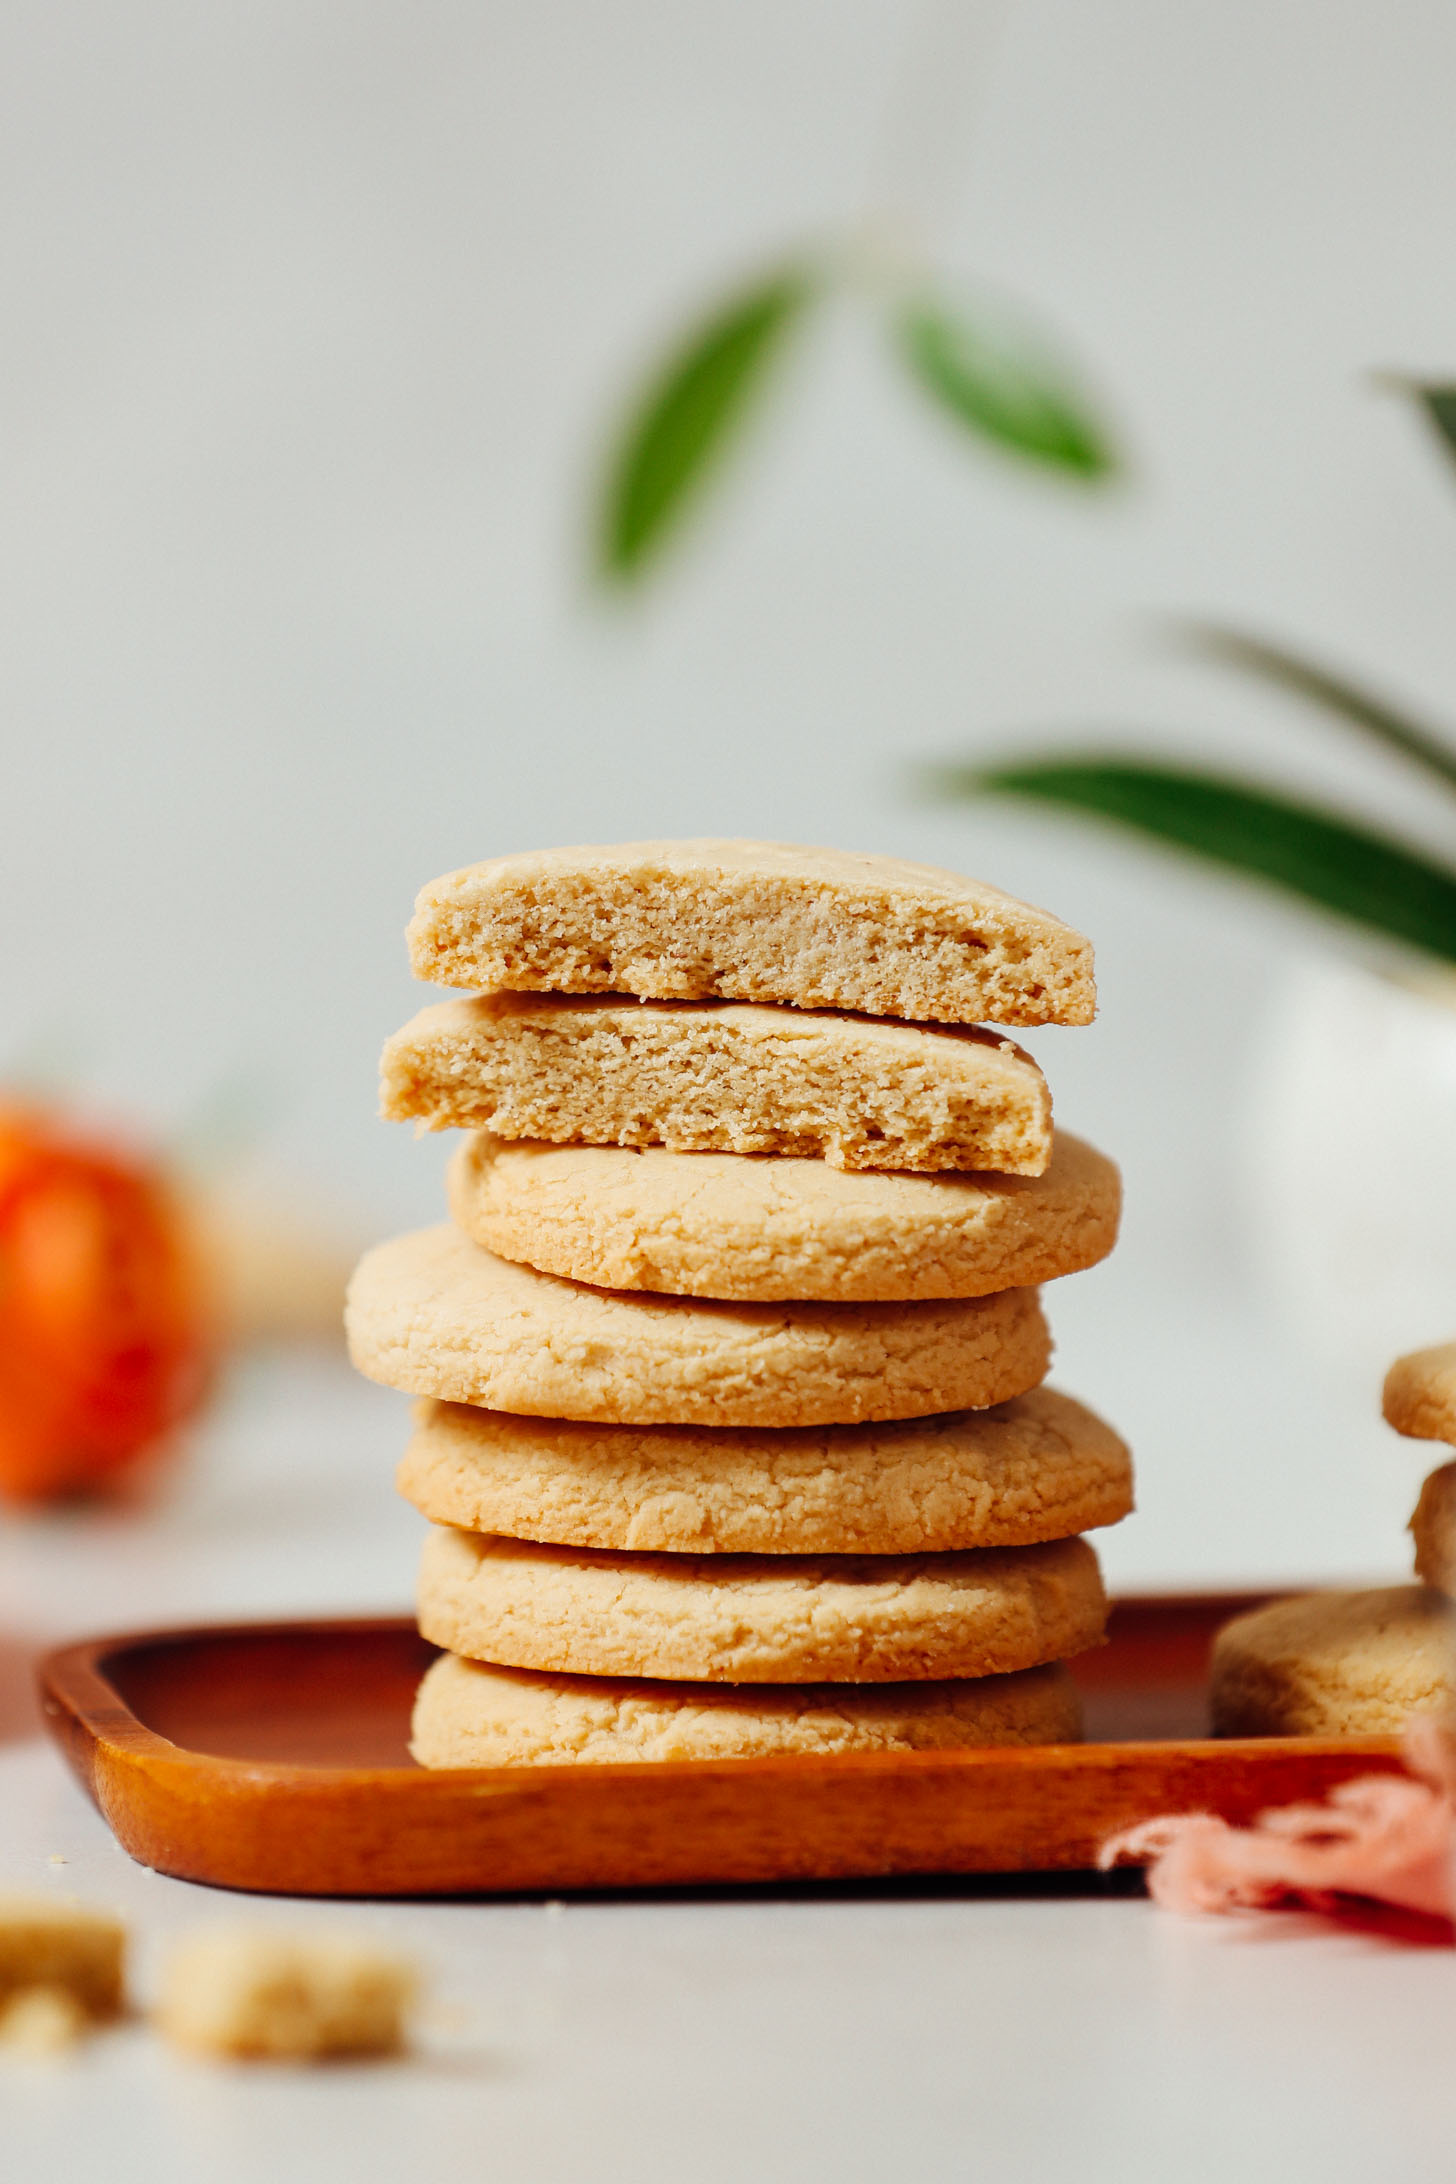 Stack of crispy gluten-free shortbread cookies made with coconut oil